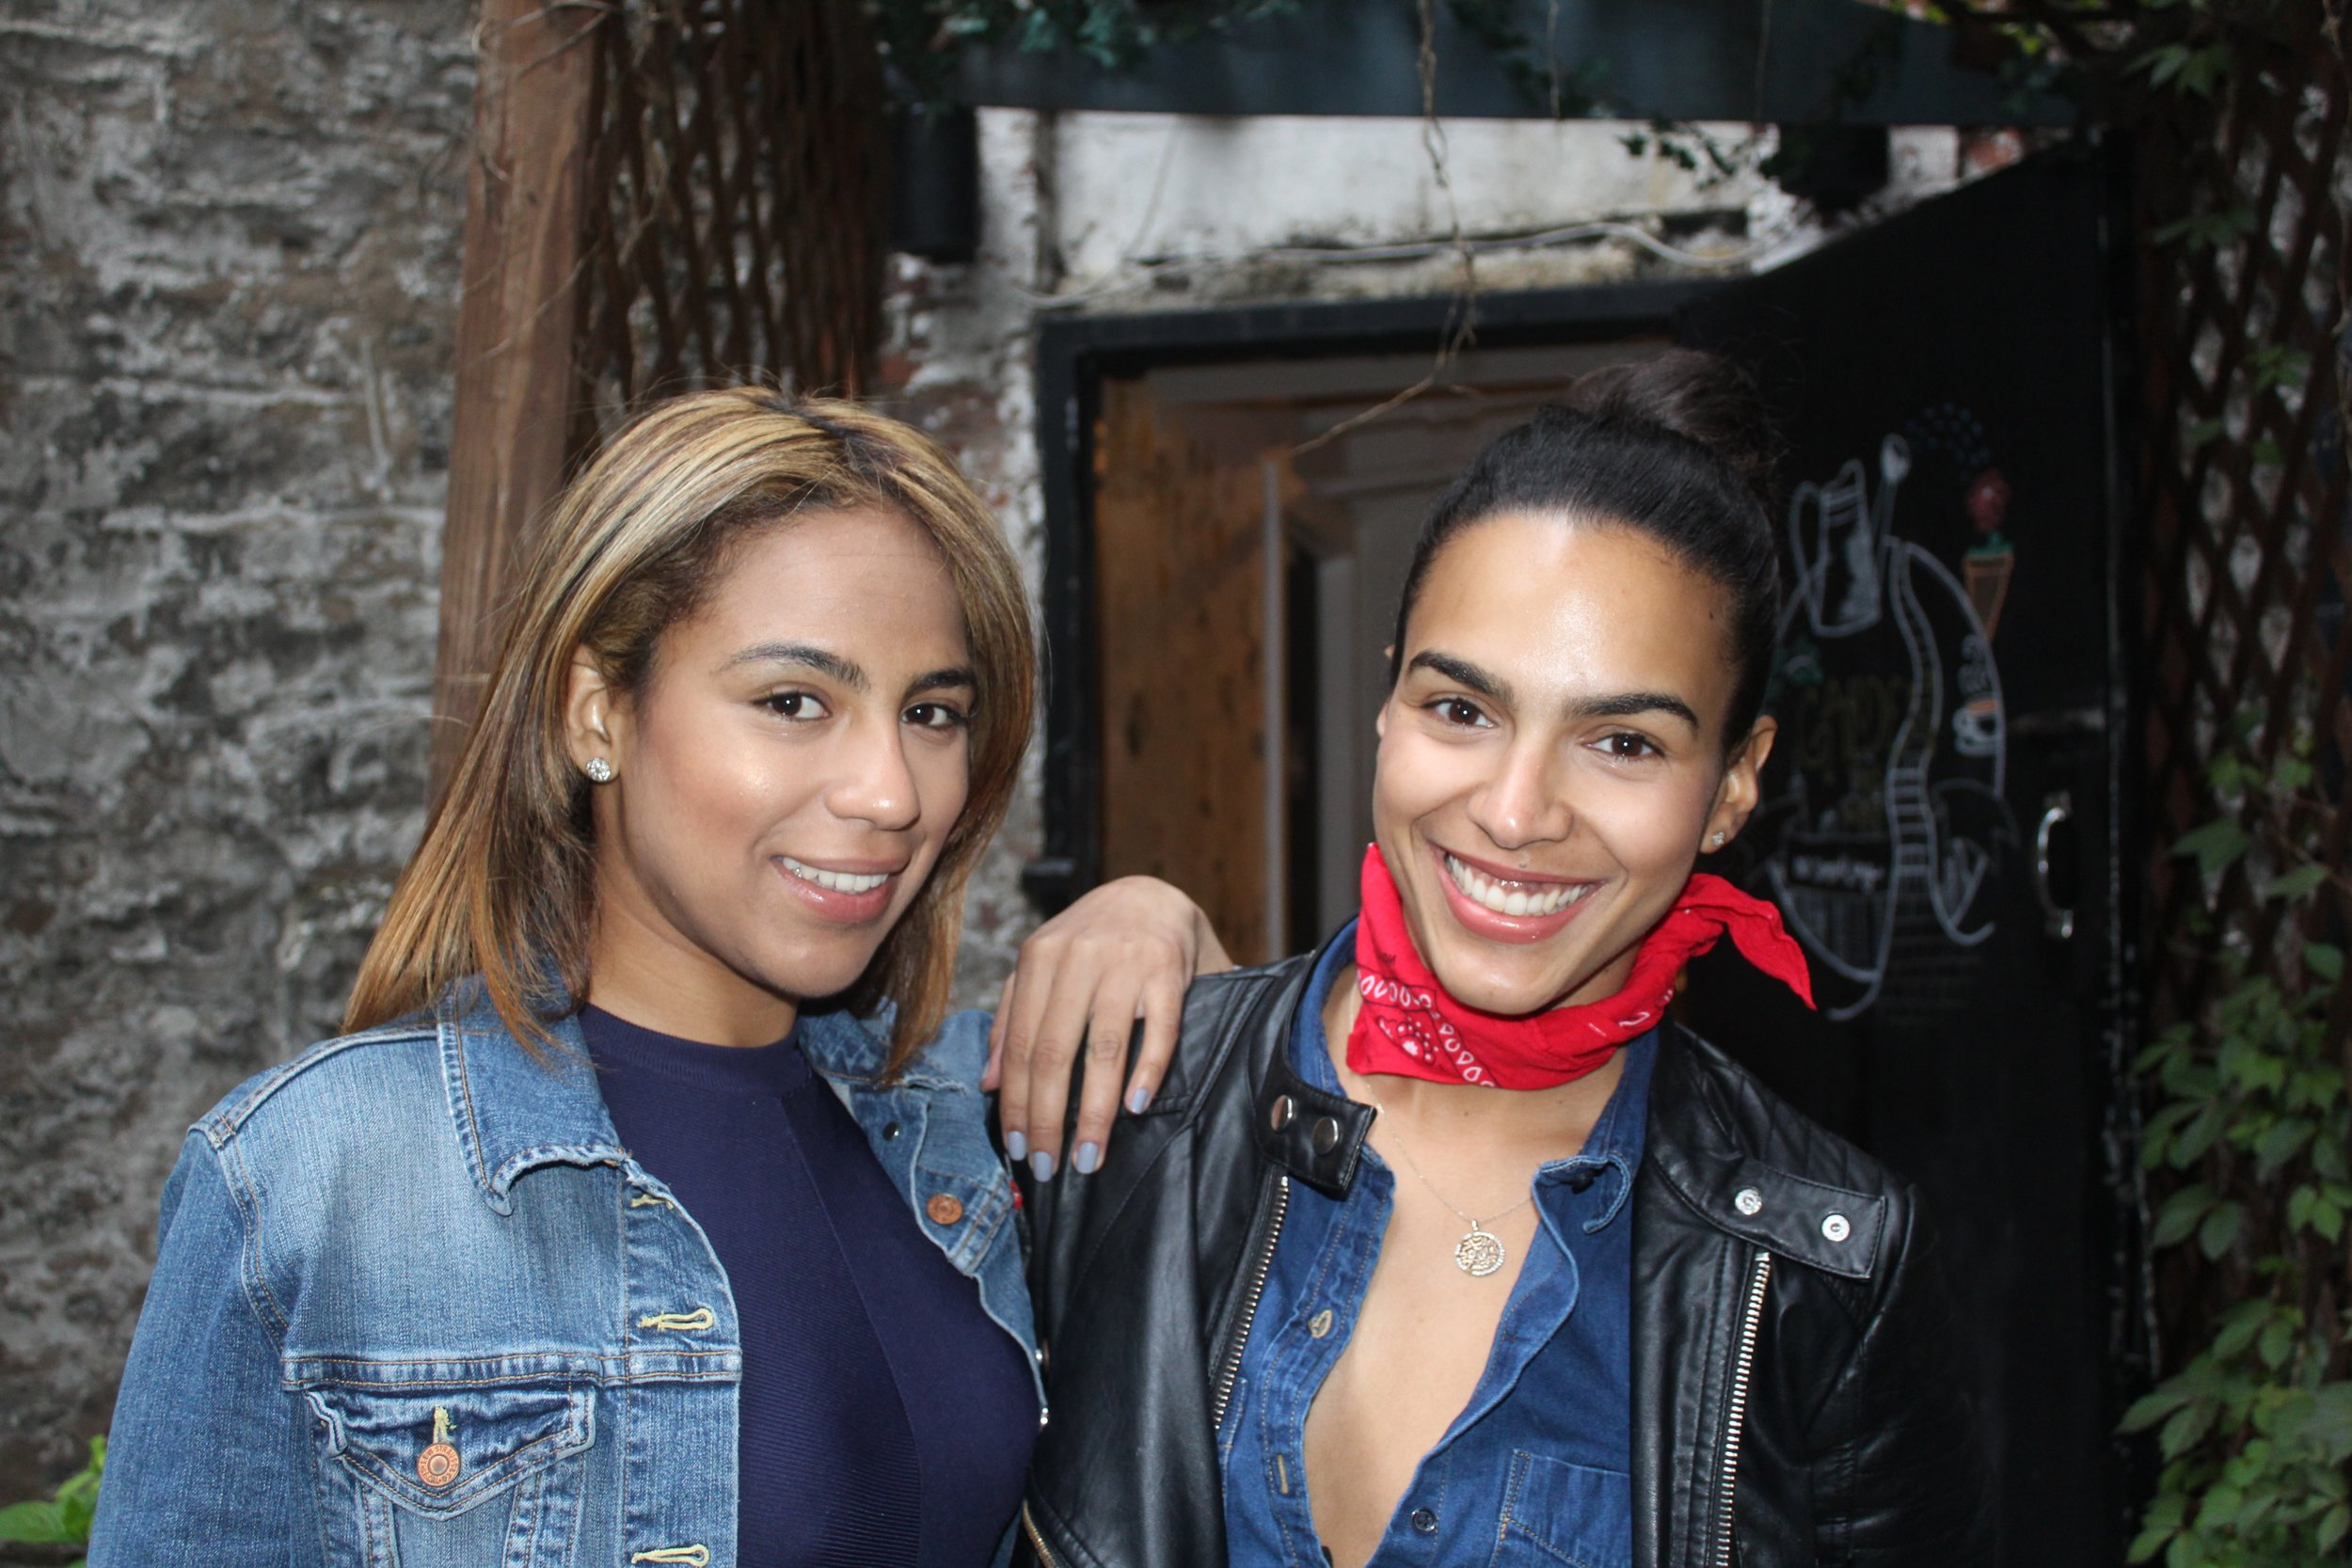 Sisters turned partners - MEET SHANELLY & ROSHELLYTHE SISTERS BEHIND HIGHER DINING